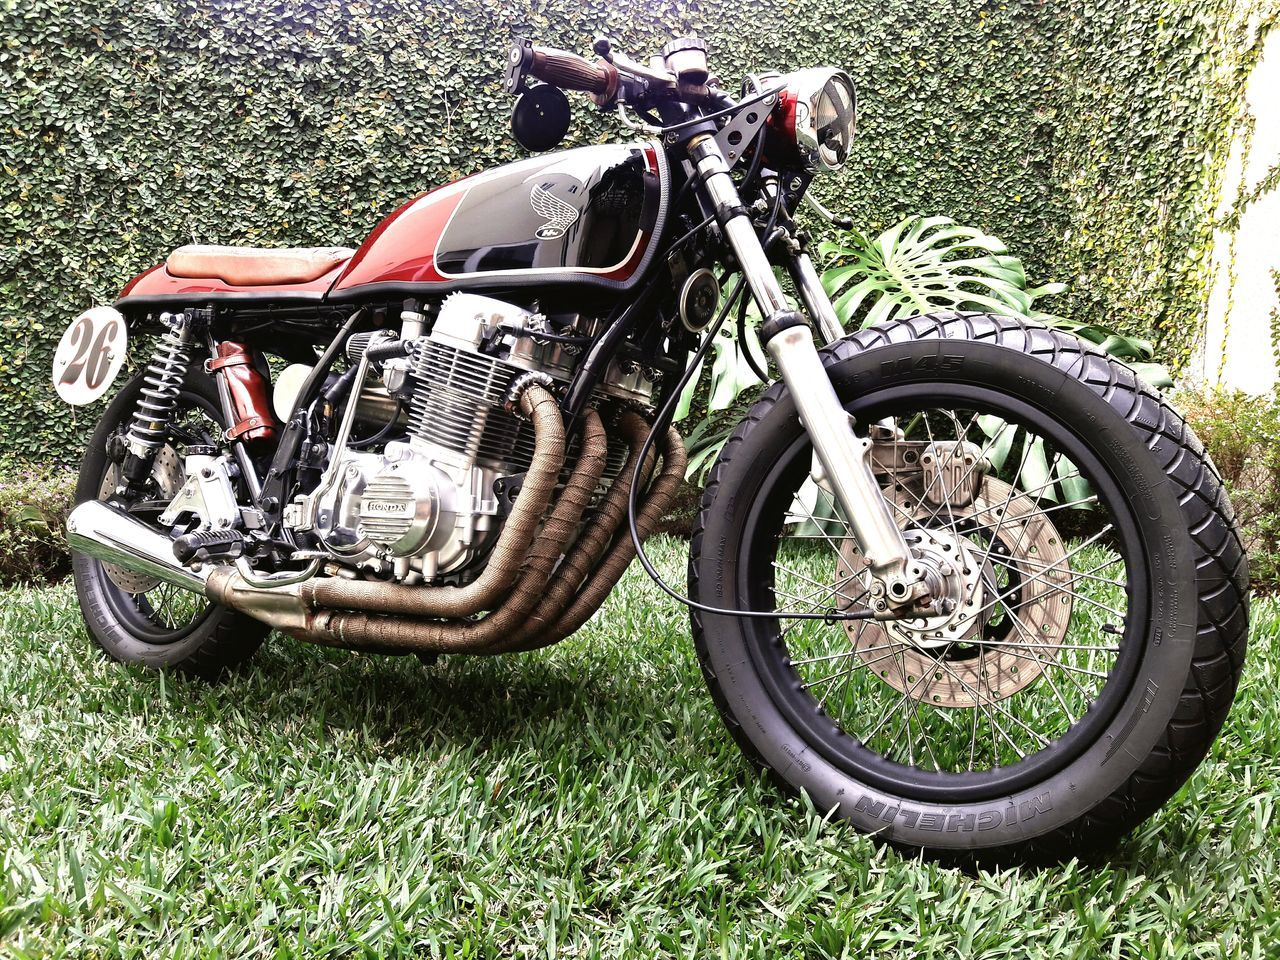 Honda Bicycle Mode Of Transport Transportation Motorcycle Outdoors Cycling Tire Land Vehicle Motorcycle Racing No People Nature Day Motorsport Peru Peruvian Readytorace CB500 CB750 Cbfourclub Caferacer Caferacerculture Distinguishedgentlemansride Distinguished Gentleman Rider Ride A Bike